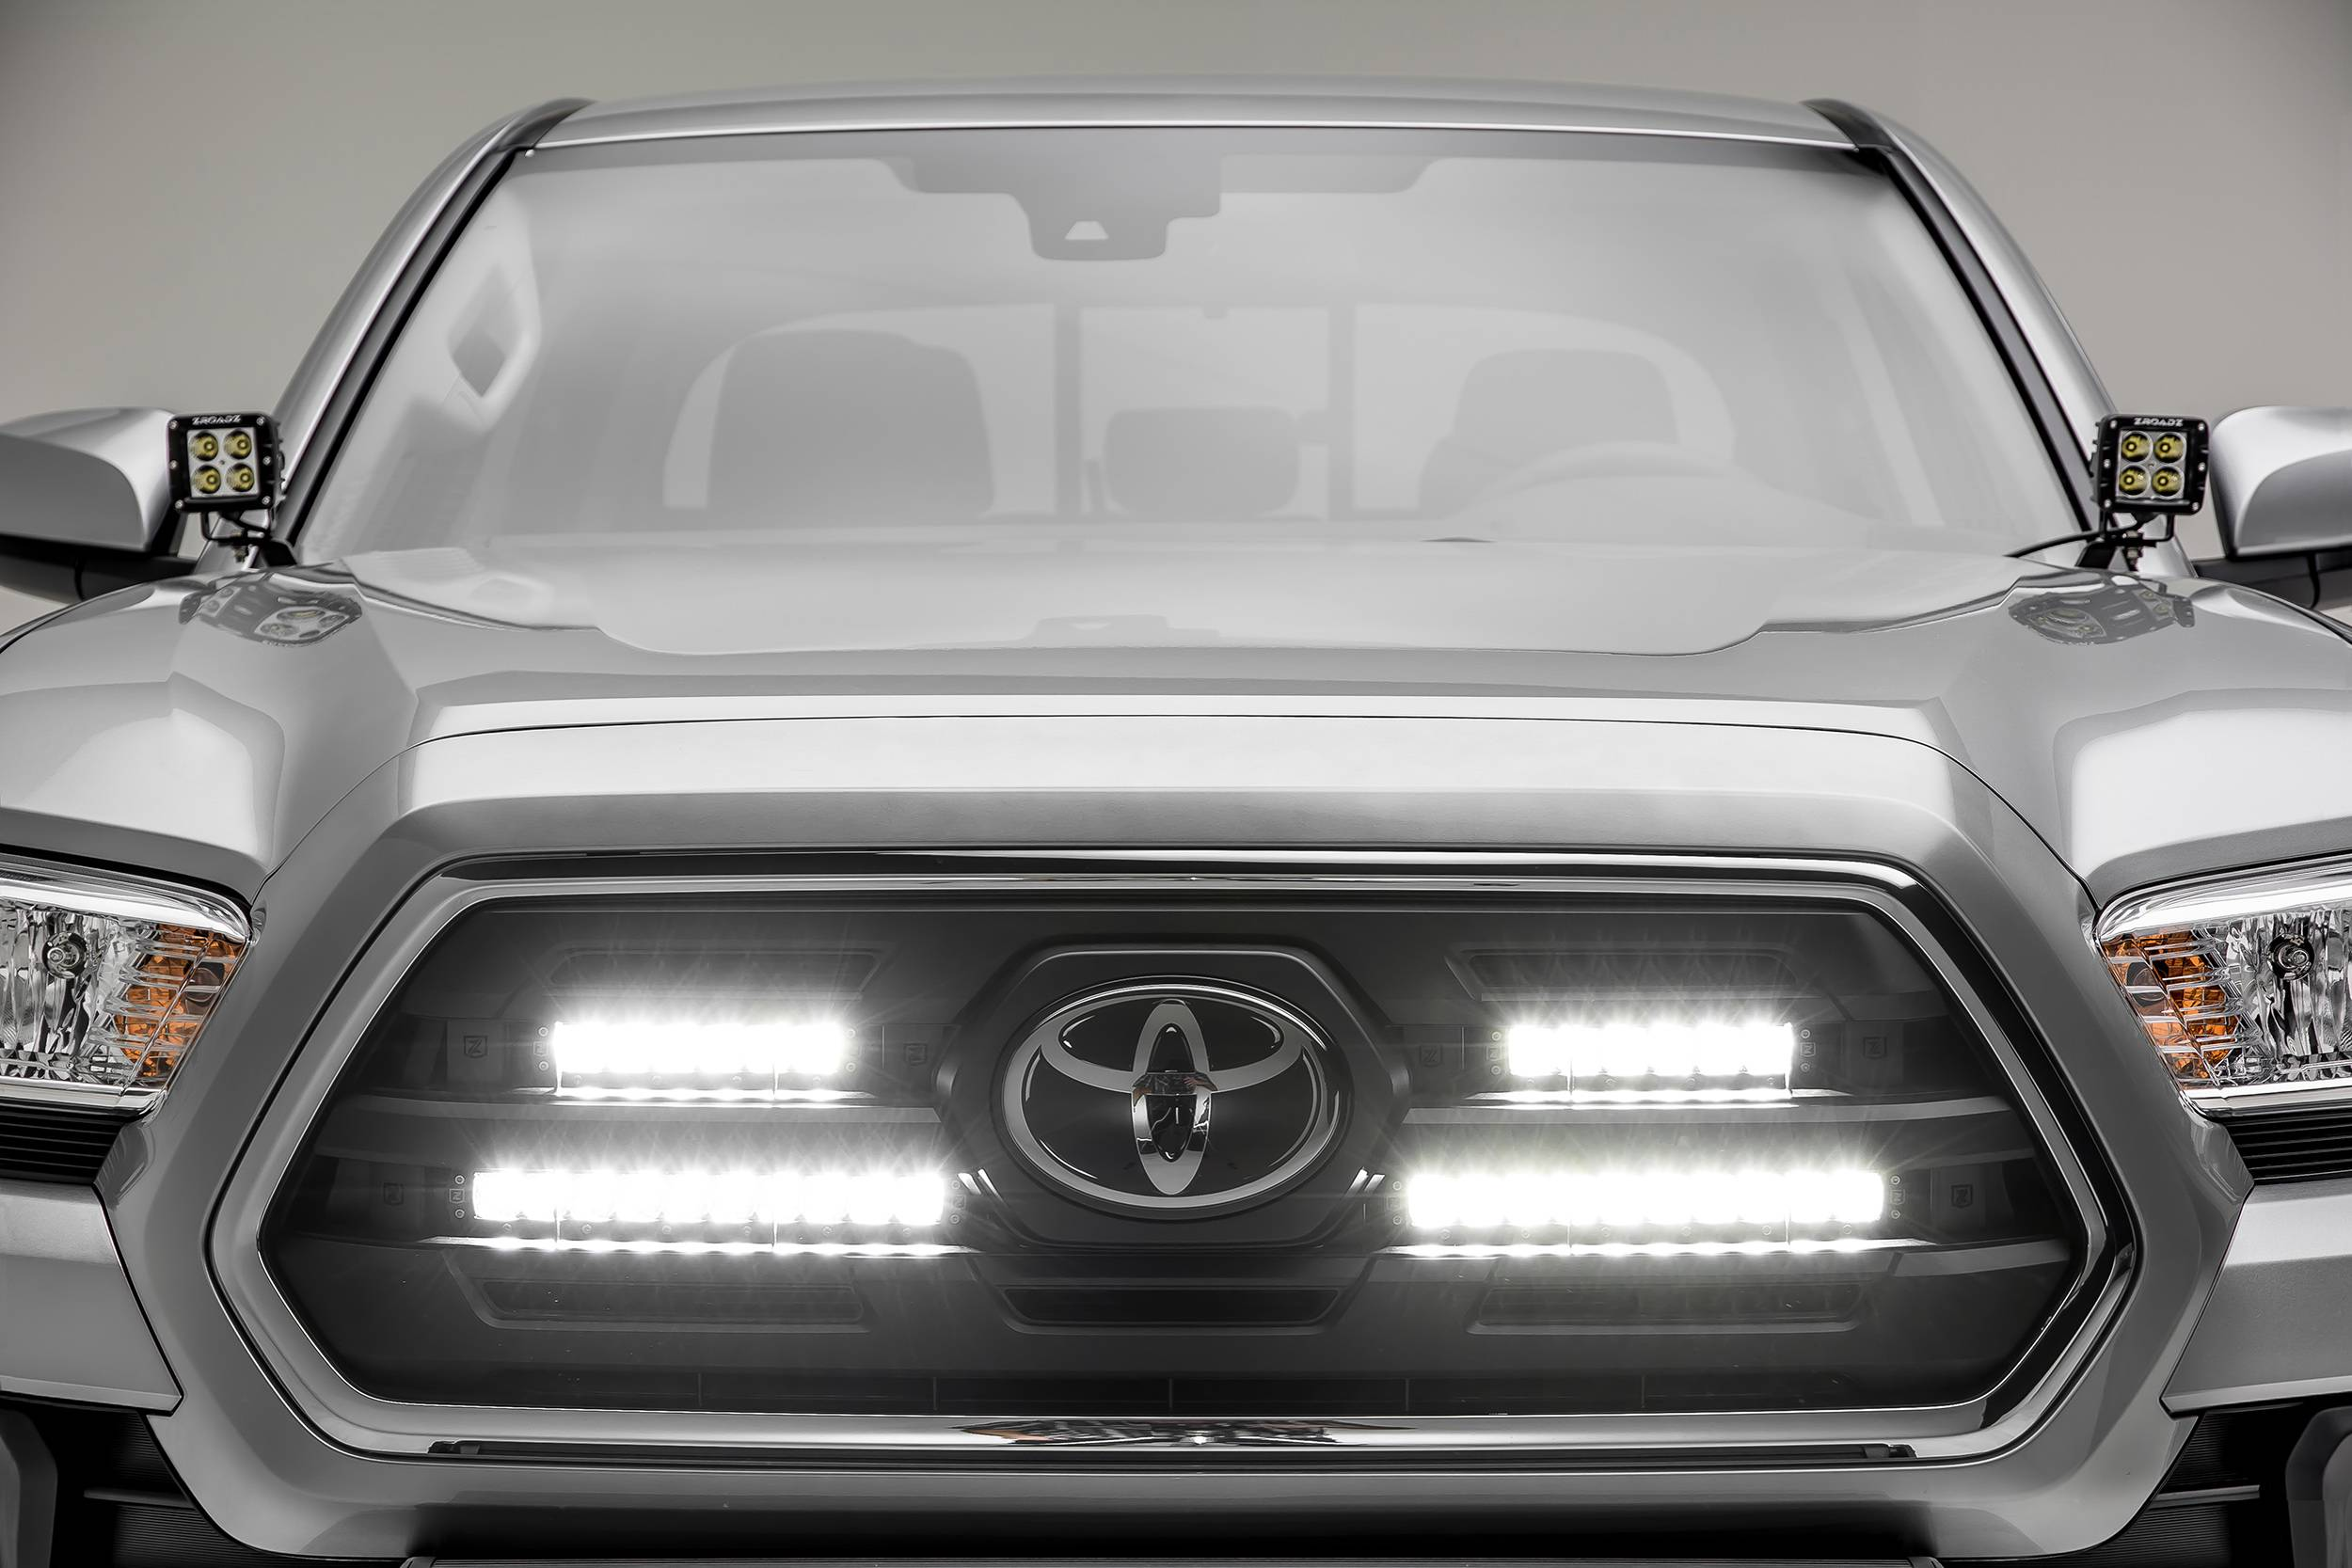 2018 2019 Toyota Tacoma Oem Grille Led Kit With 2 6 Inch And 2 10 Inch Led Straight Single Row Slim Light Bars Pn Z419711 Kit